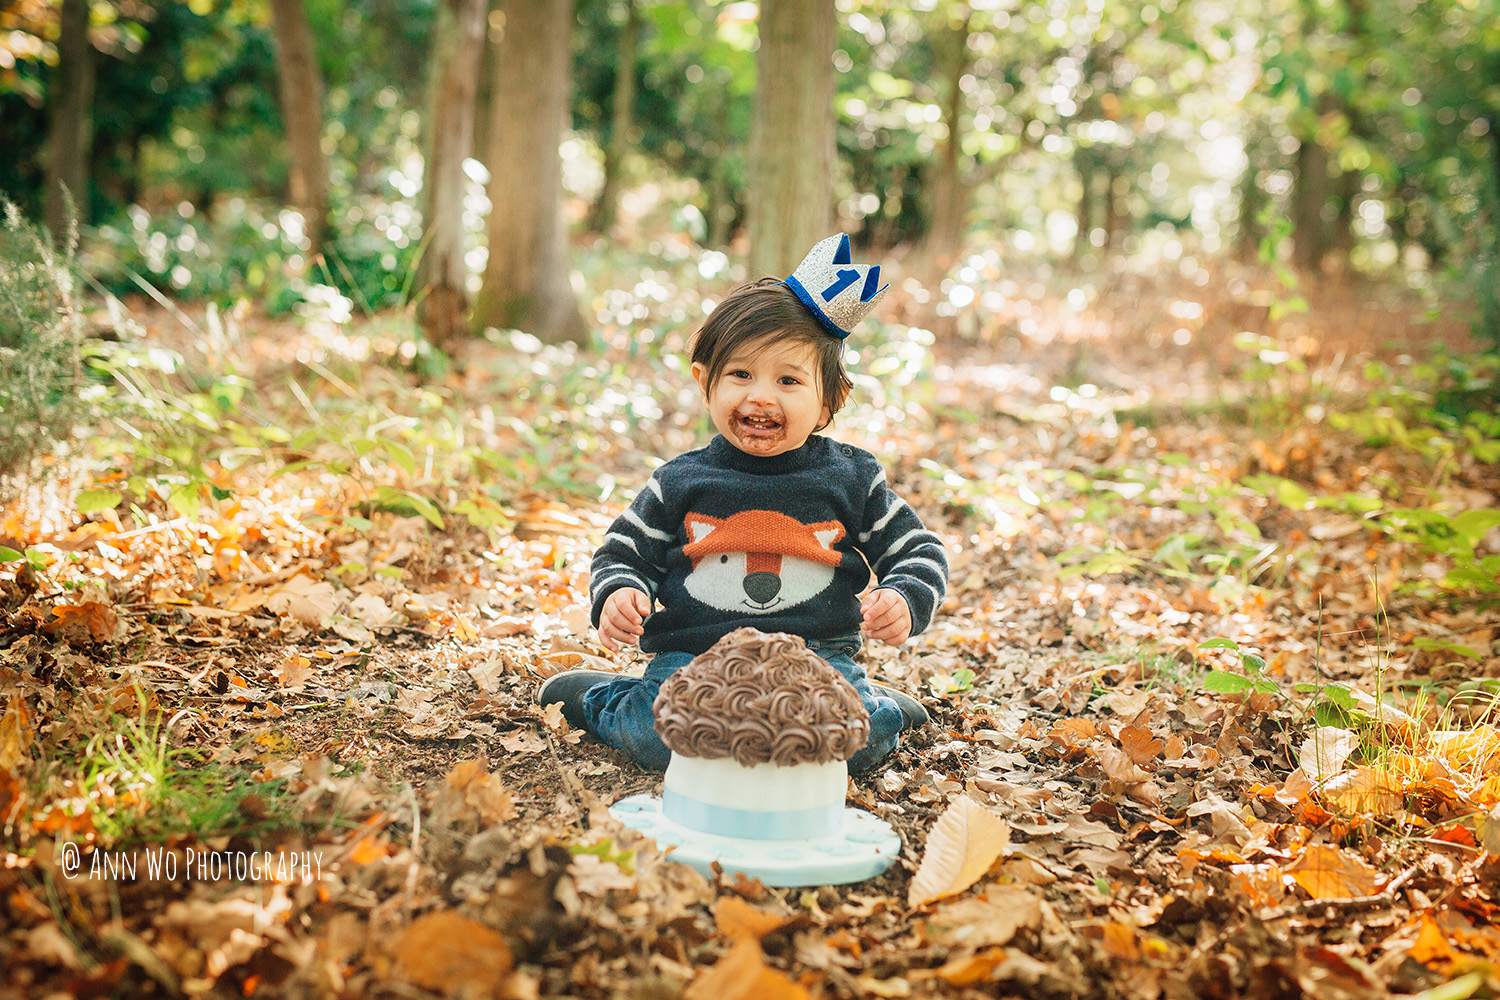 133-baby-photography-cake-smash-2-ann-wo-32.JPG